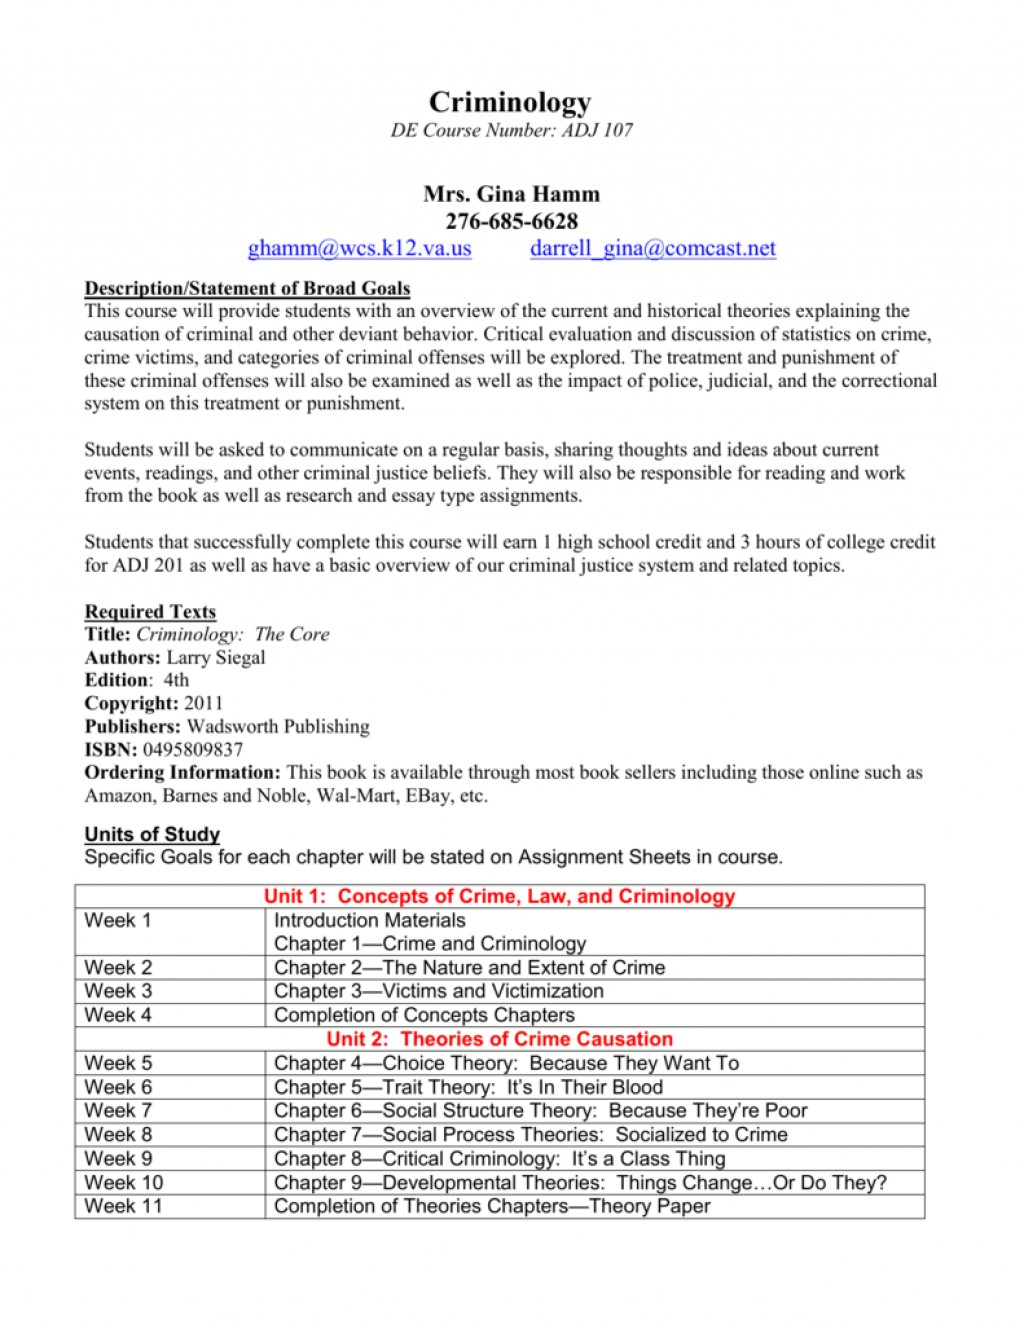 020 Criminal Justice Essay Topics 008033336 1 Unique Canadian Compare And Contrast Youth Act Large